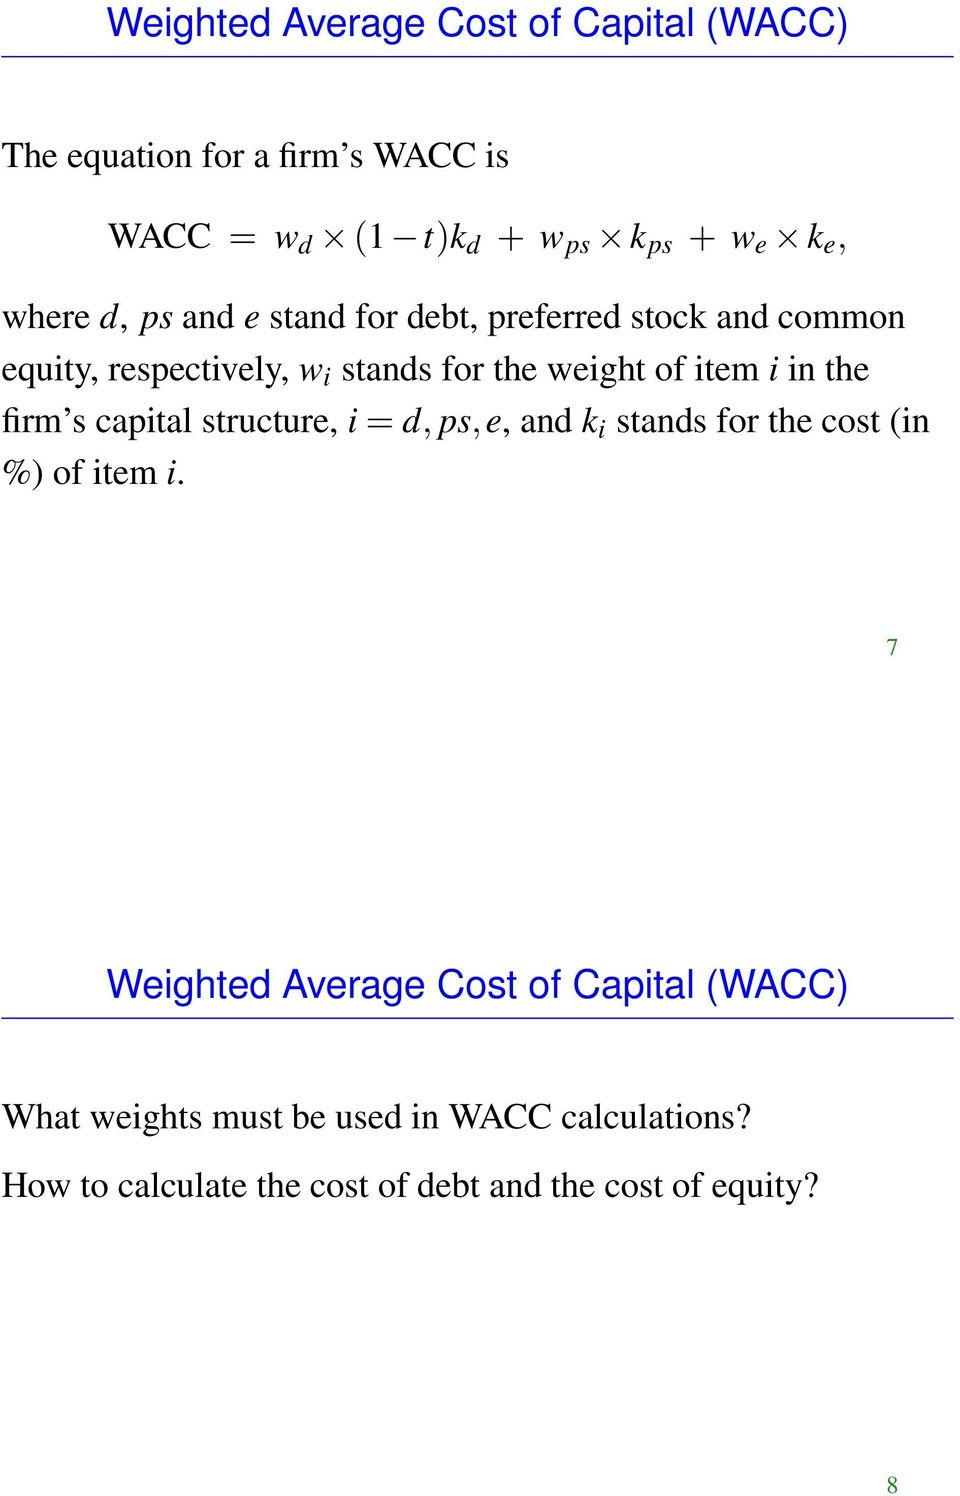 in the firm s capital structure, i = d, ps,e, and k i stands for the cost (in %) of item i.